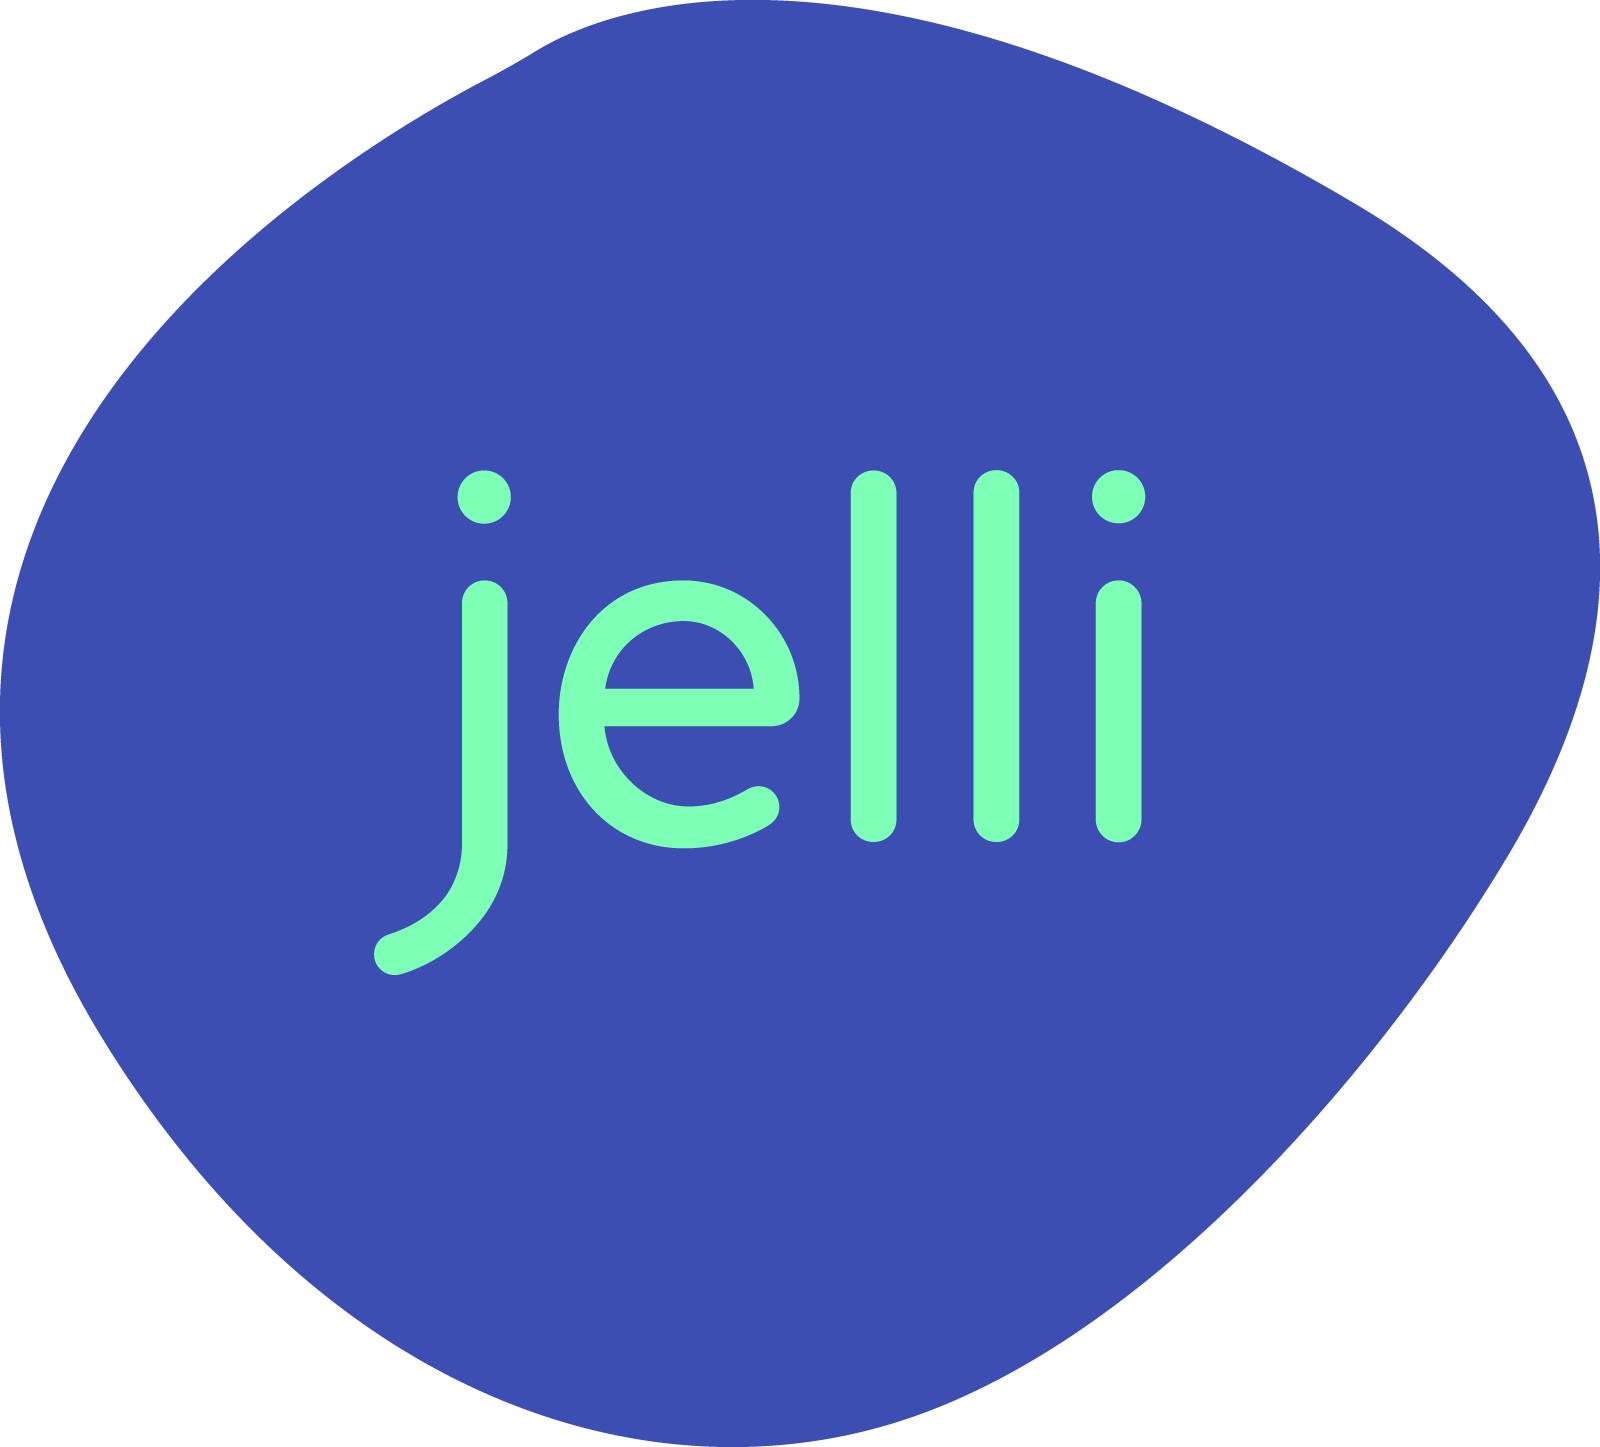 Jelli Group